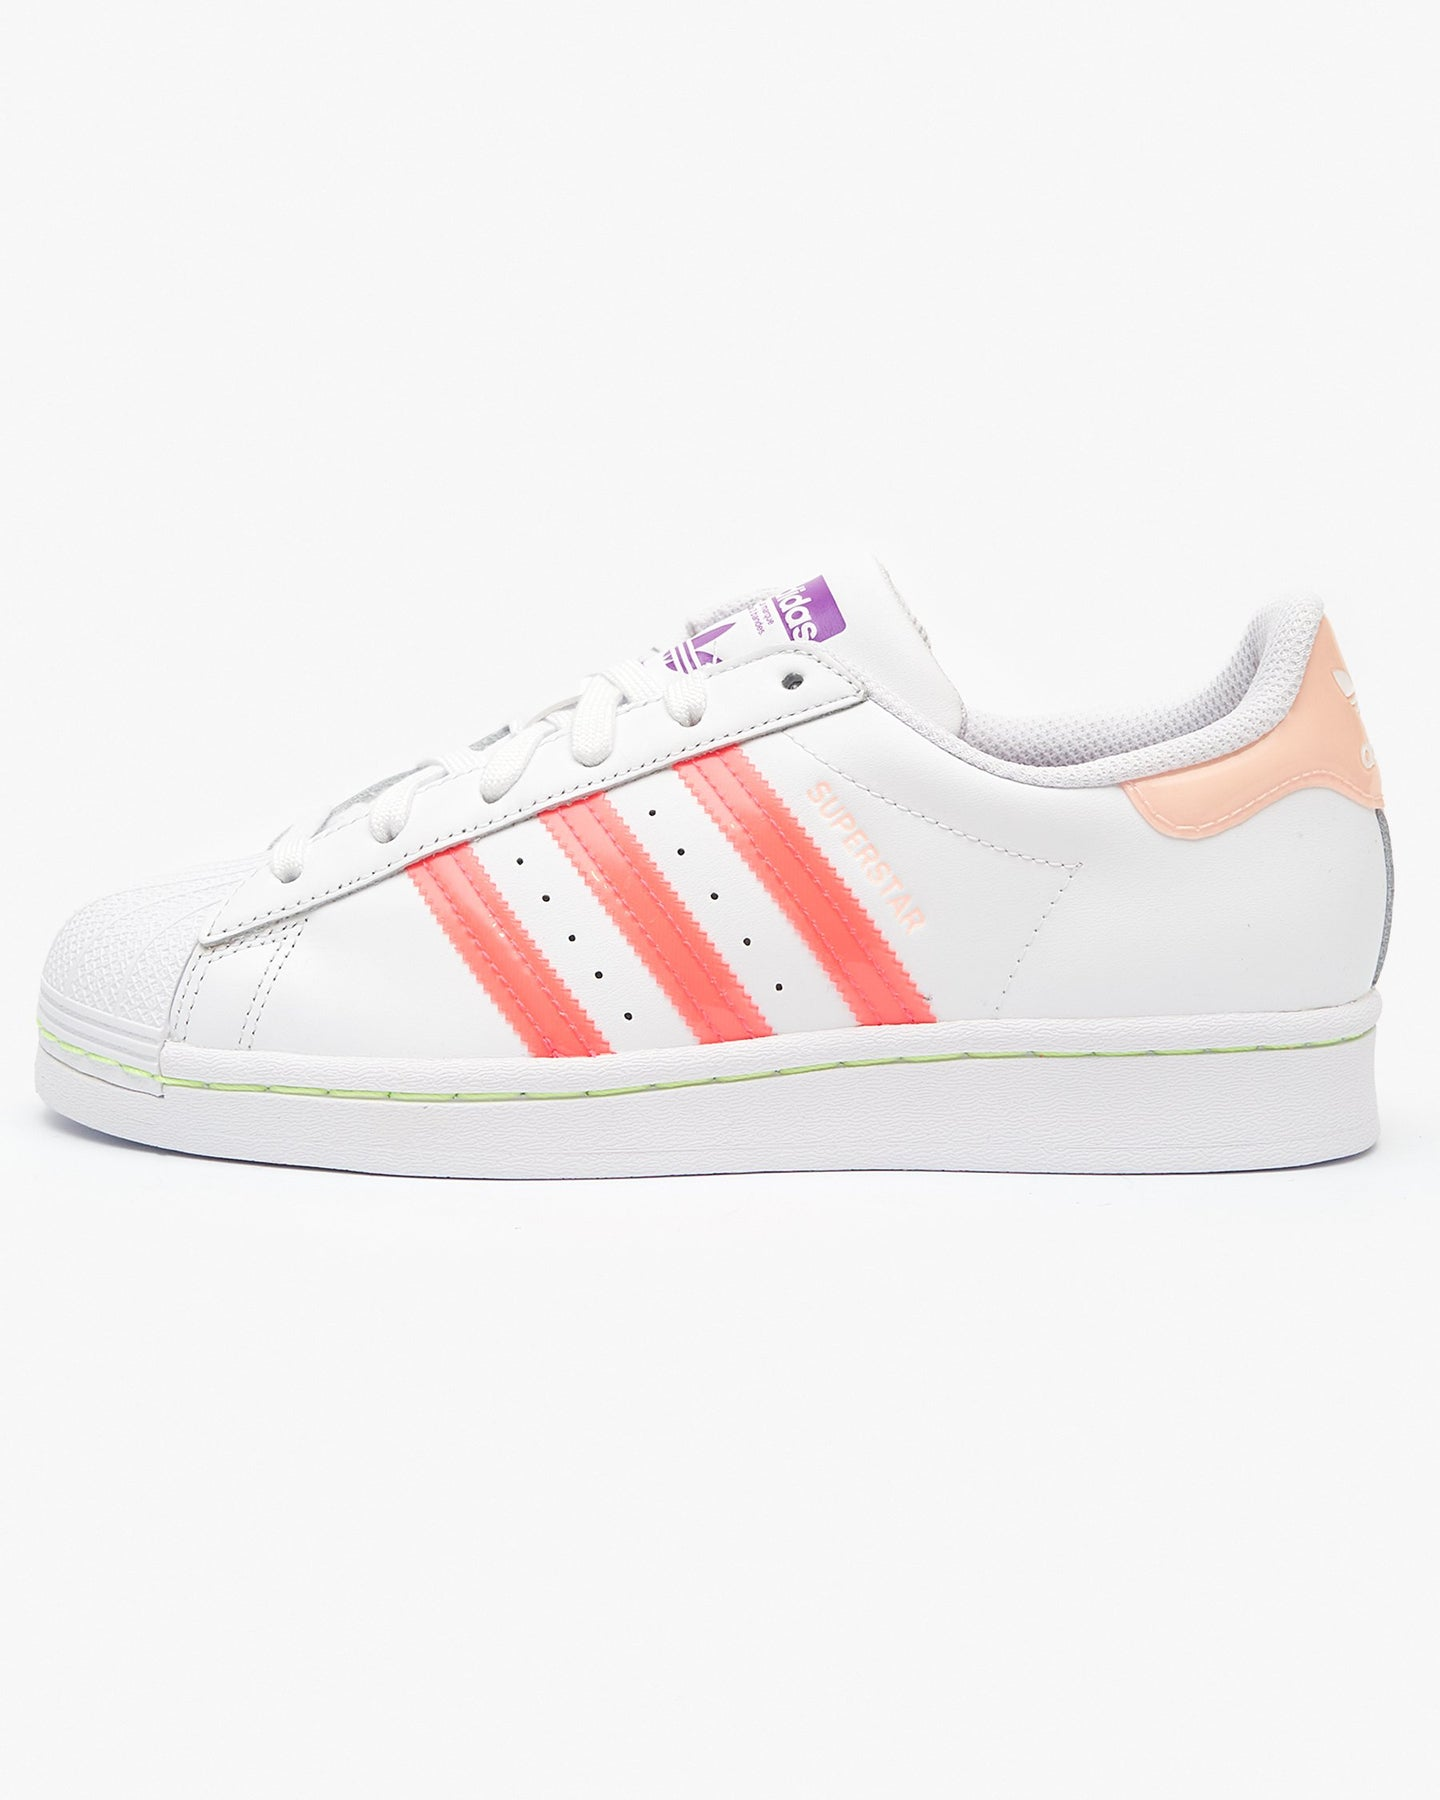 Adidas Originals Womens Superstar - Cloud White / Signal Pink UK 4 FW25024 4060517867363 Adidas Originals Trainers